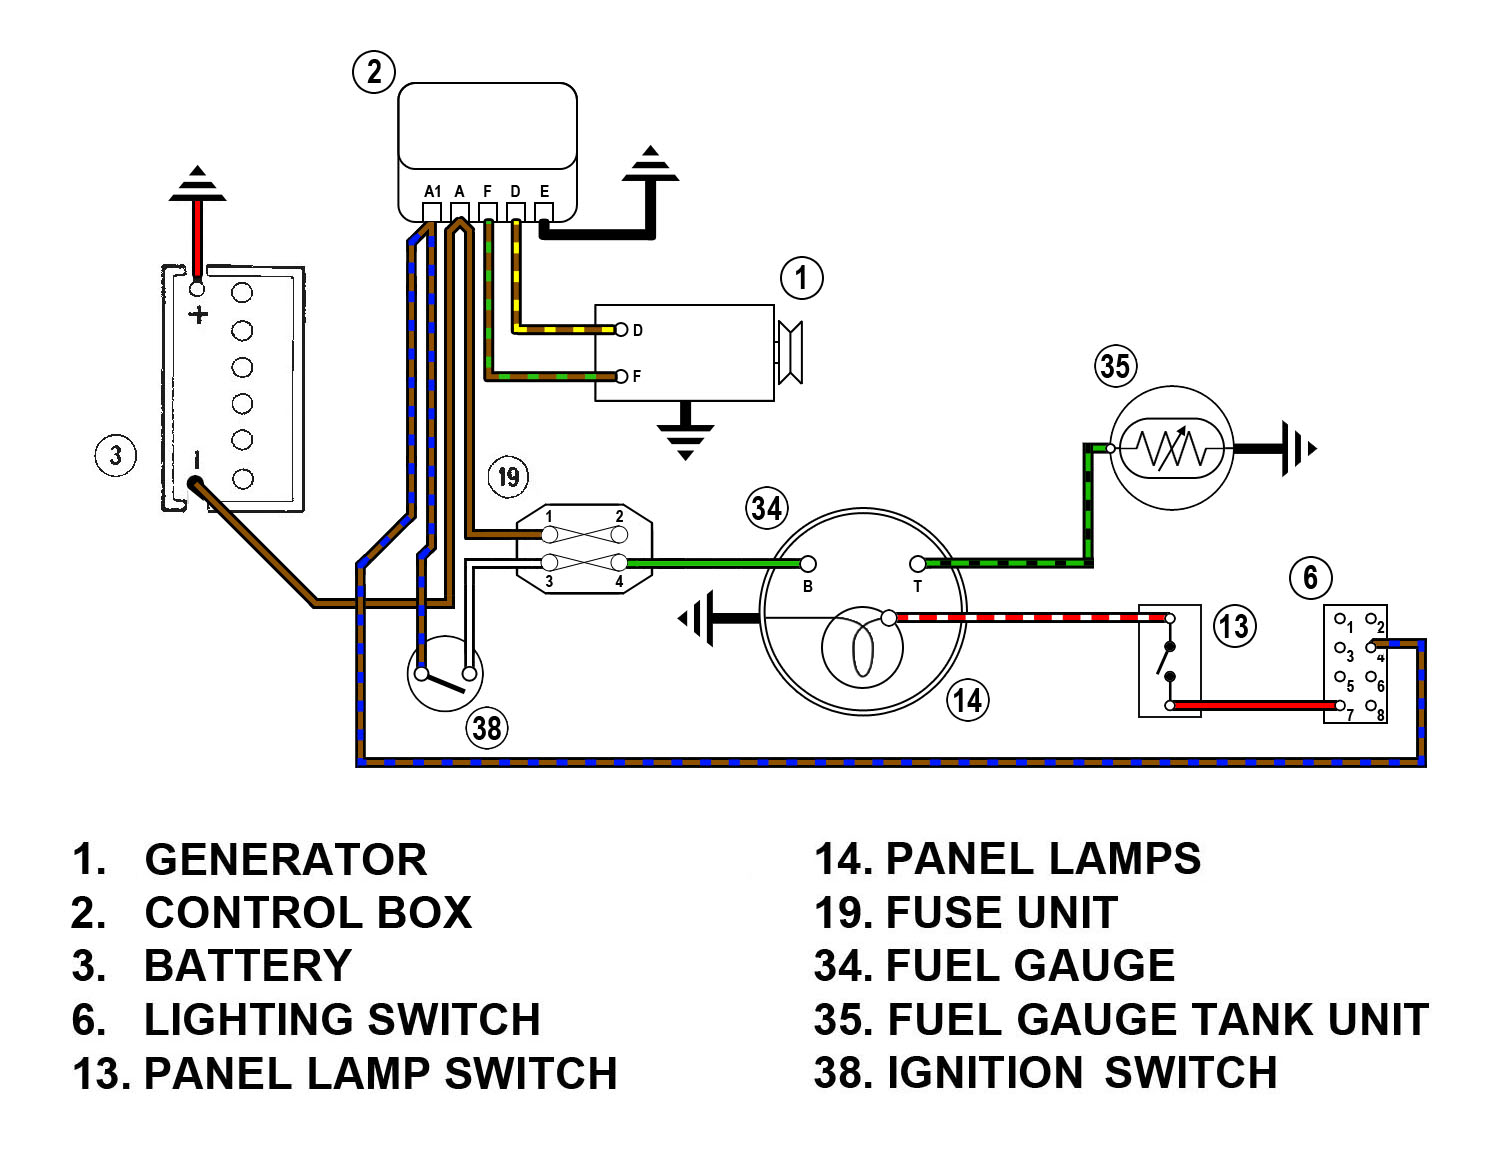 1968 chevelle ss tach wiring diagram spridgetguru.com-tech index-fuel gauge wiring diagram gas gauge and tach wiring diagram